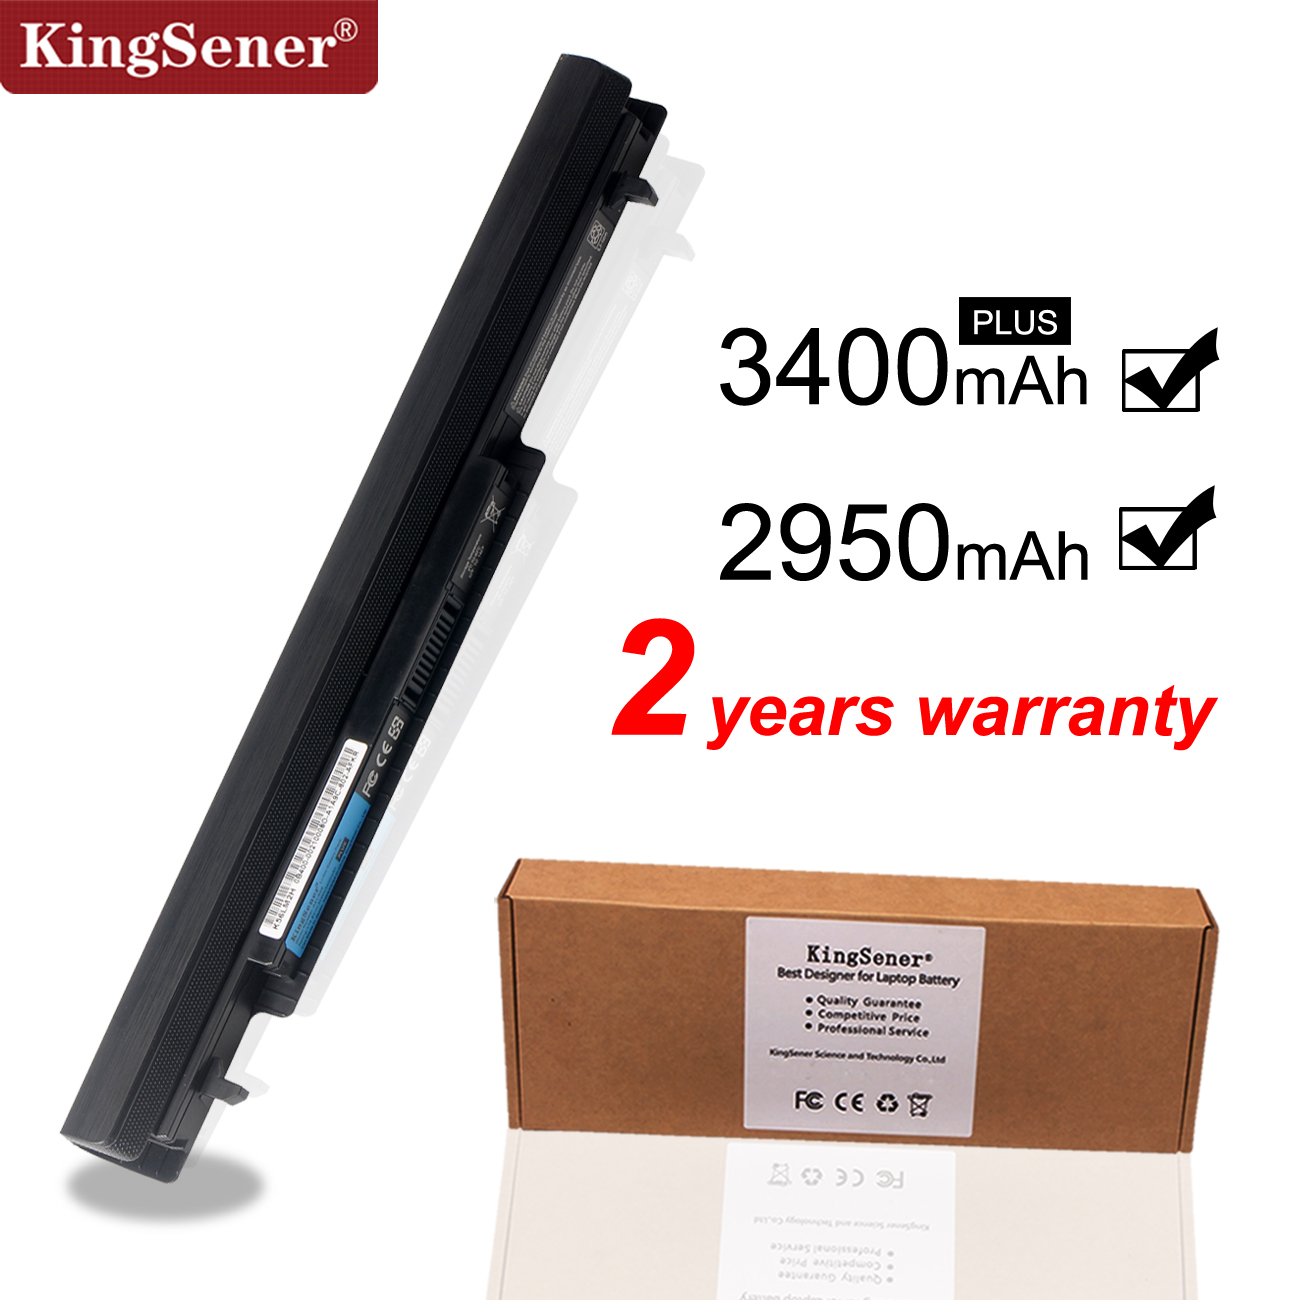 KingSener New A41-K56 Laptop Battery For ASUS K46 K46C K46CA K46CM K56 K56CA K56CM S46C S56C R505CA A32-K56 A42-K56 15V 2950mAh